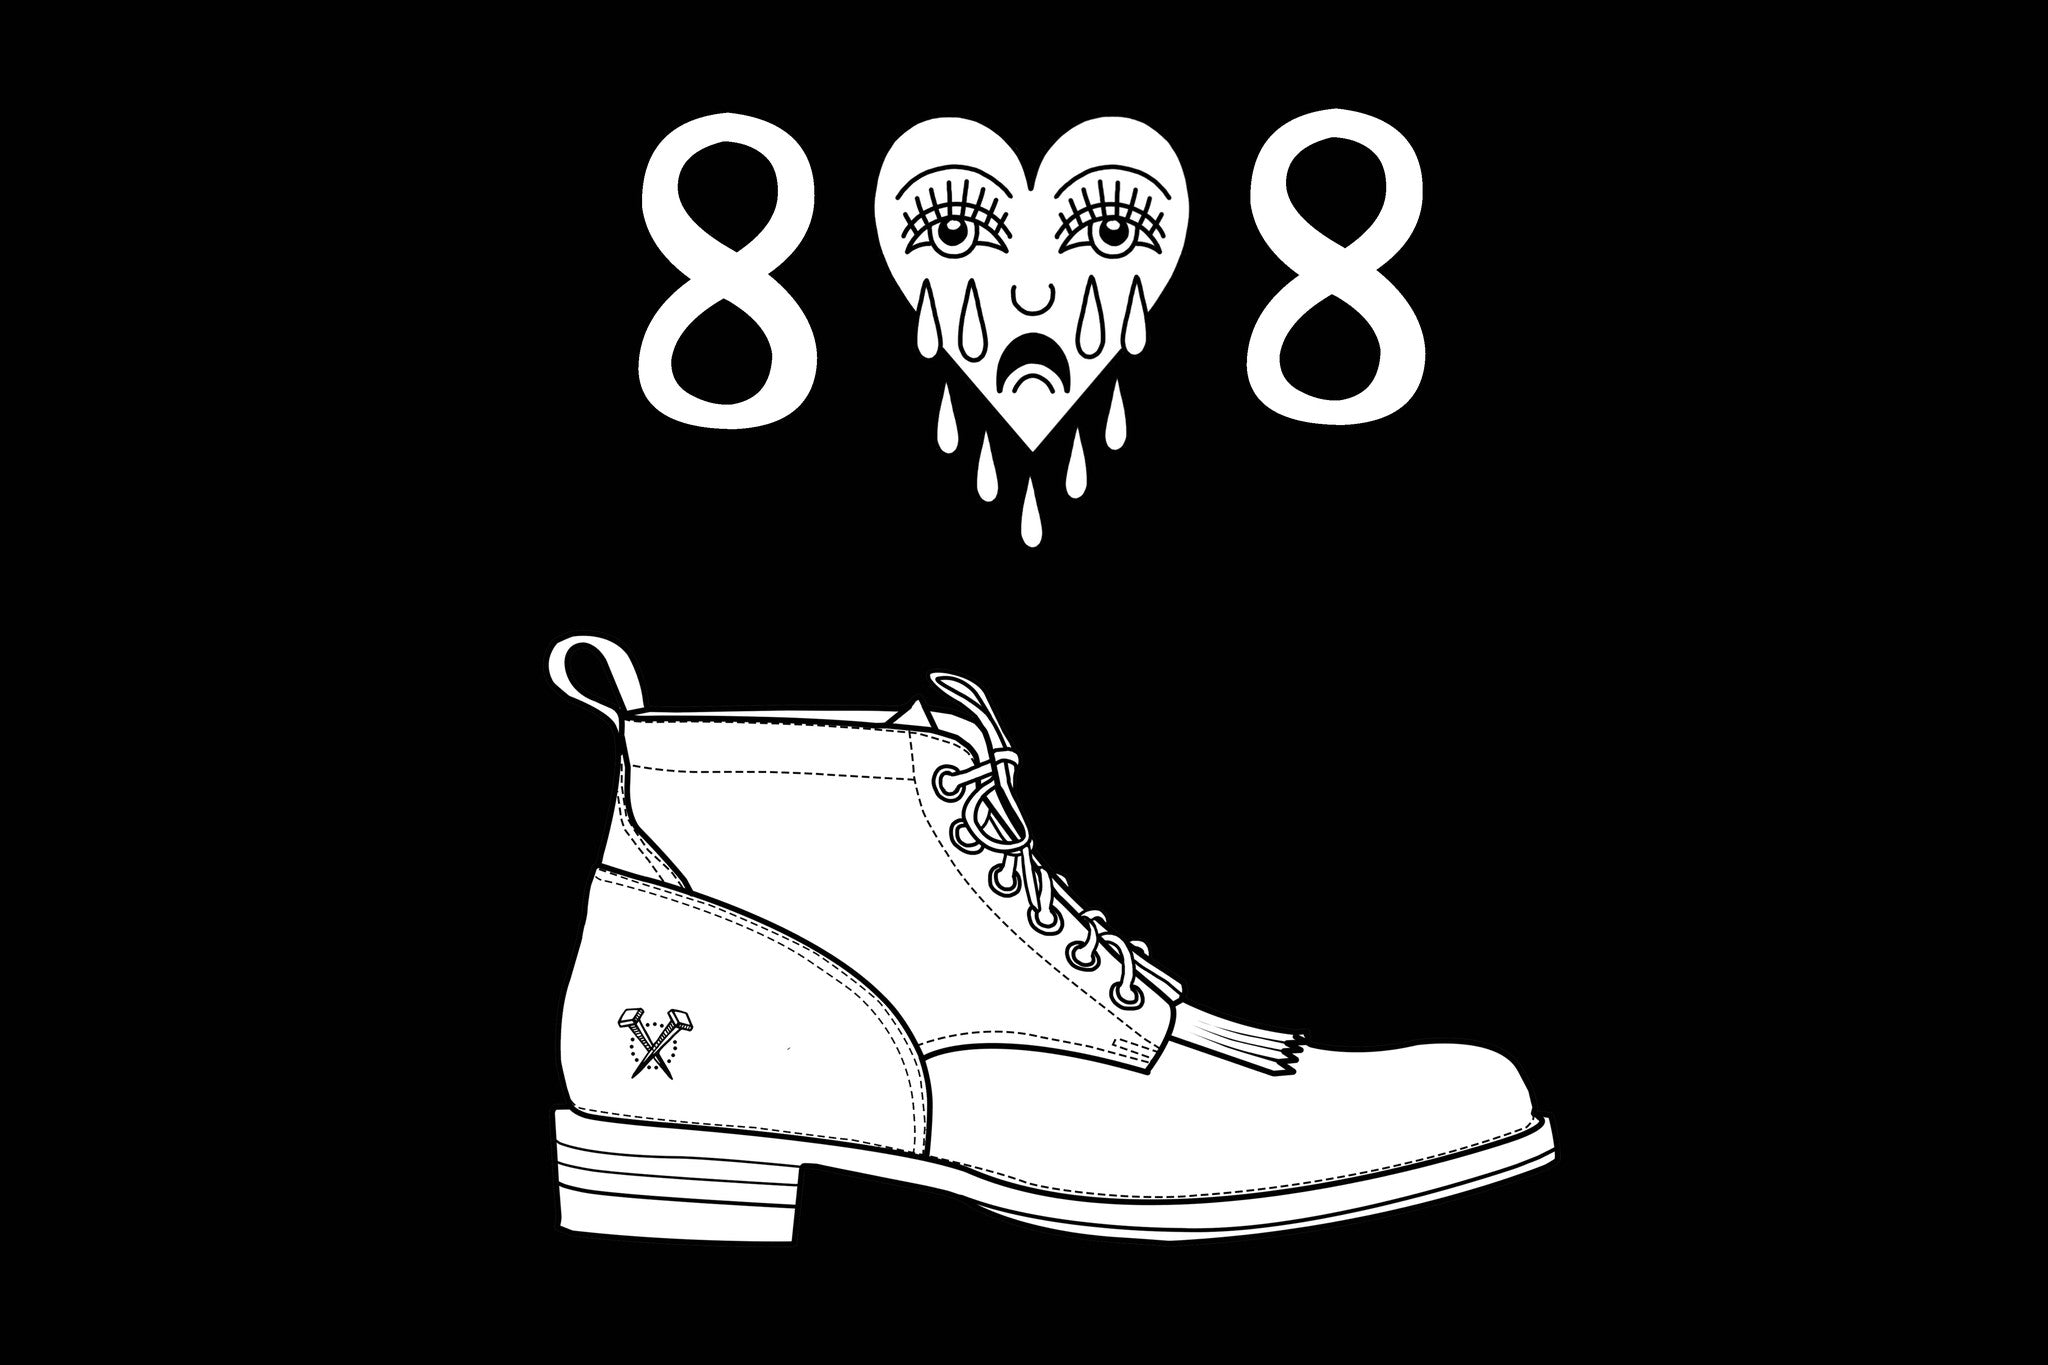 808 D(esert) Mid-Rise Roper Boot - April 29, 2017 Release